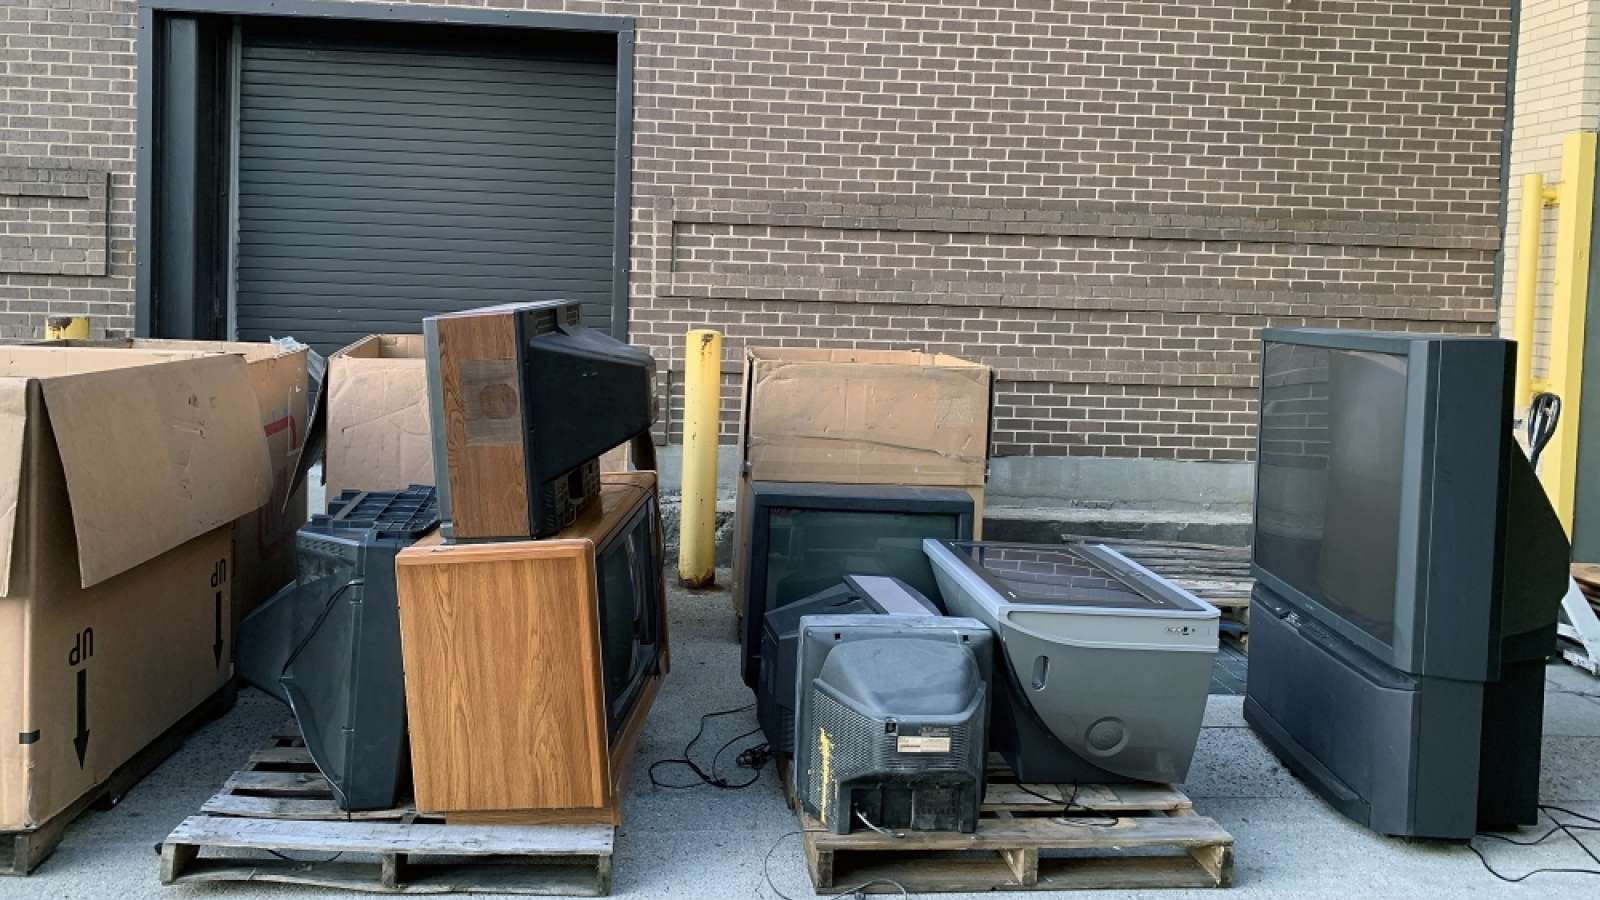 televisions on pallets at a loading dock at a recycling event